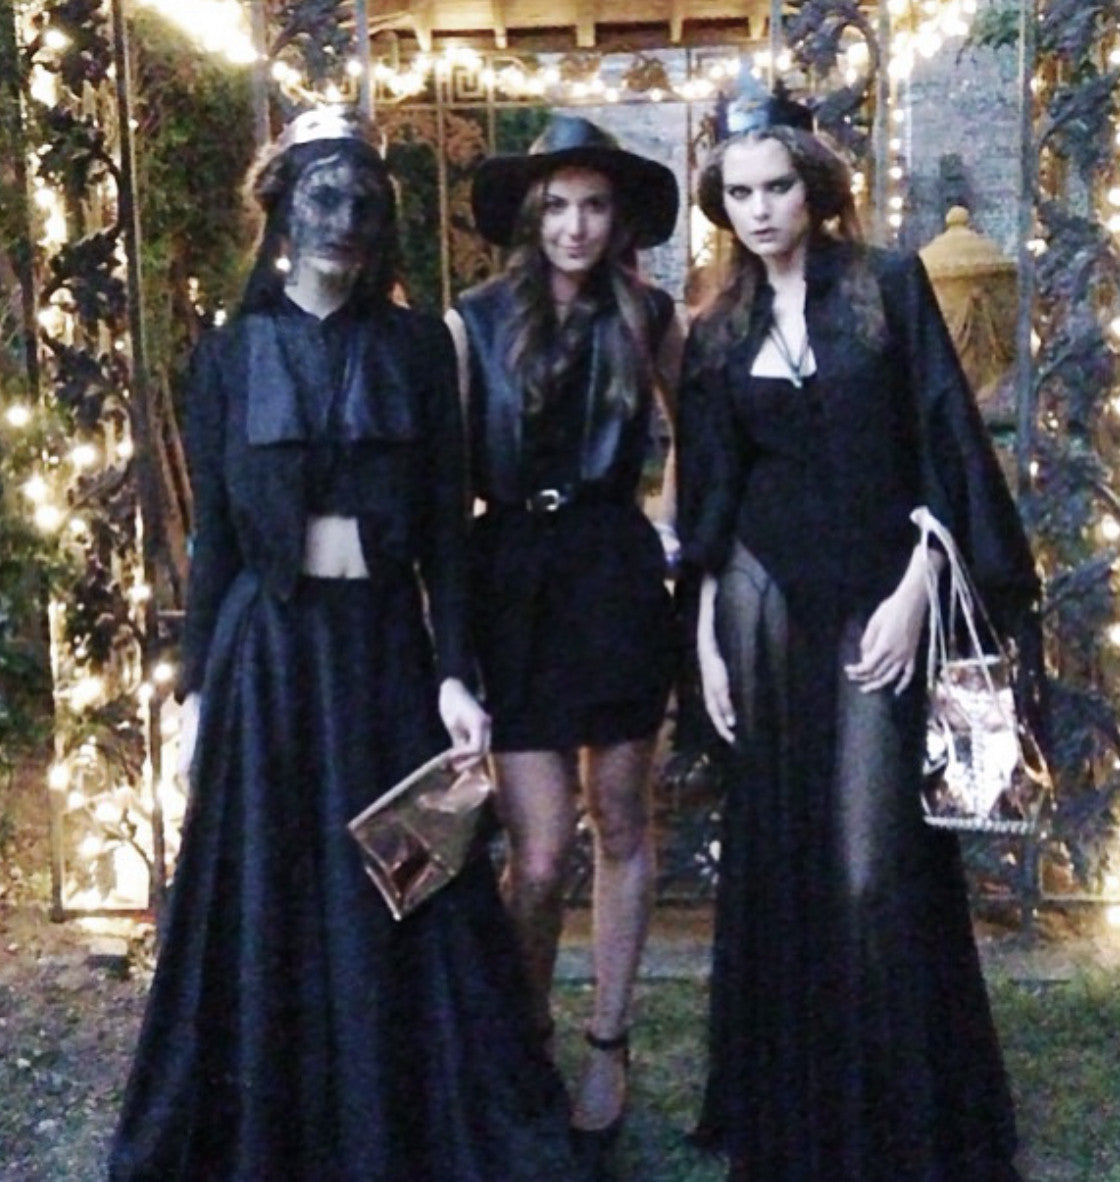 Ali Aliana Lohan Lindsay Lohan Sister Solveig IMG Model Wendy Nichol First Fashion Runway Show SS14 Saints of the Zodiac Astrological Sign Pisces Fringe Cape Kimono Jacket Silk Tulle Sheer Black Veil Leather Queen Crown Elizabethan Victorian Gothic Sea Witch High Priestess Copper Metallic Bullet Bucket Bag Handmade in NYC New York City Bespoke Made to Measure Order Custom Tailoring